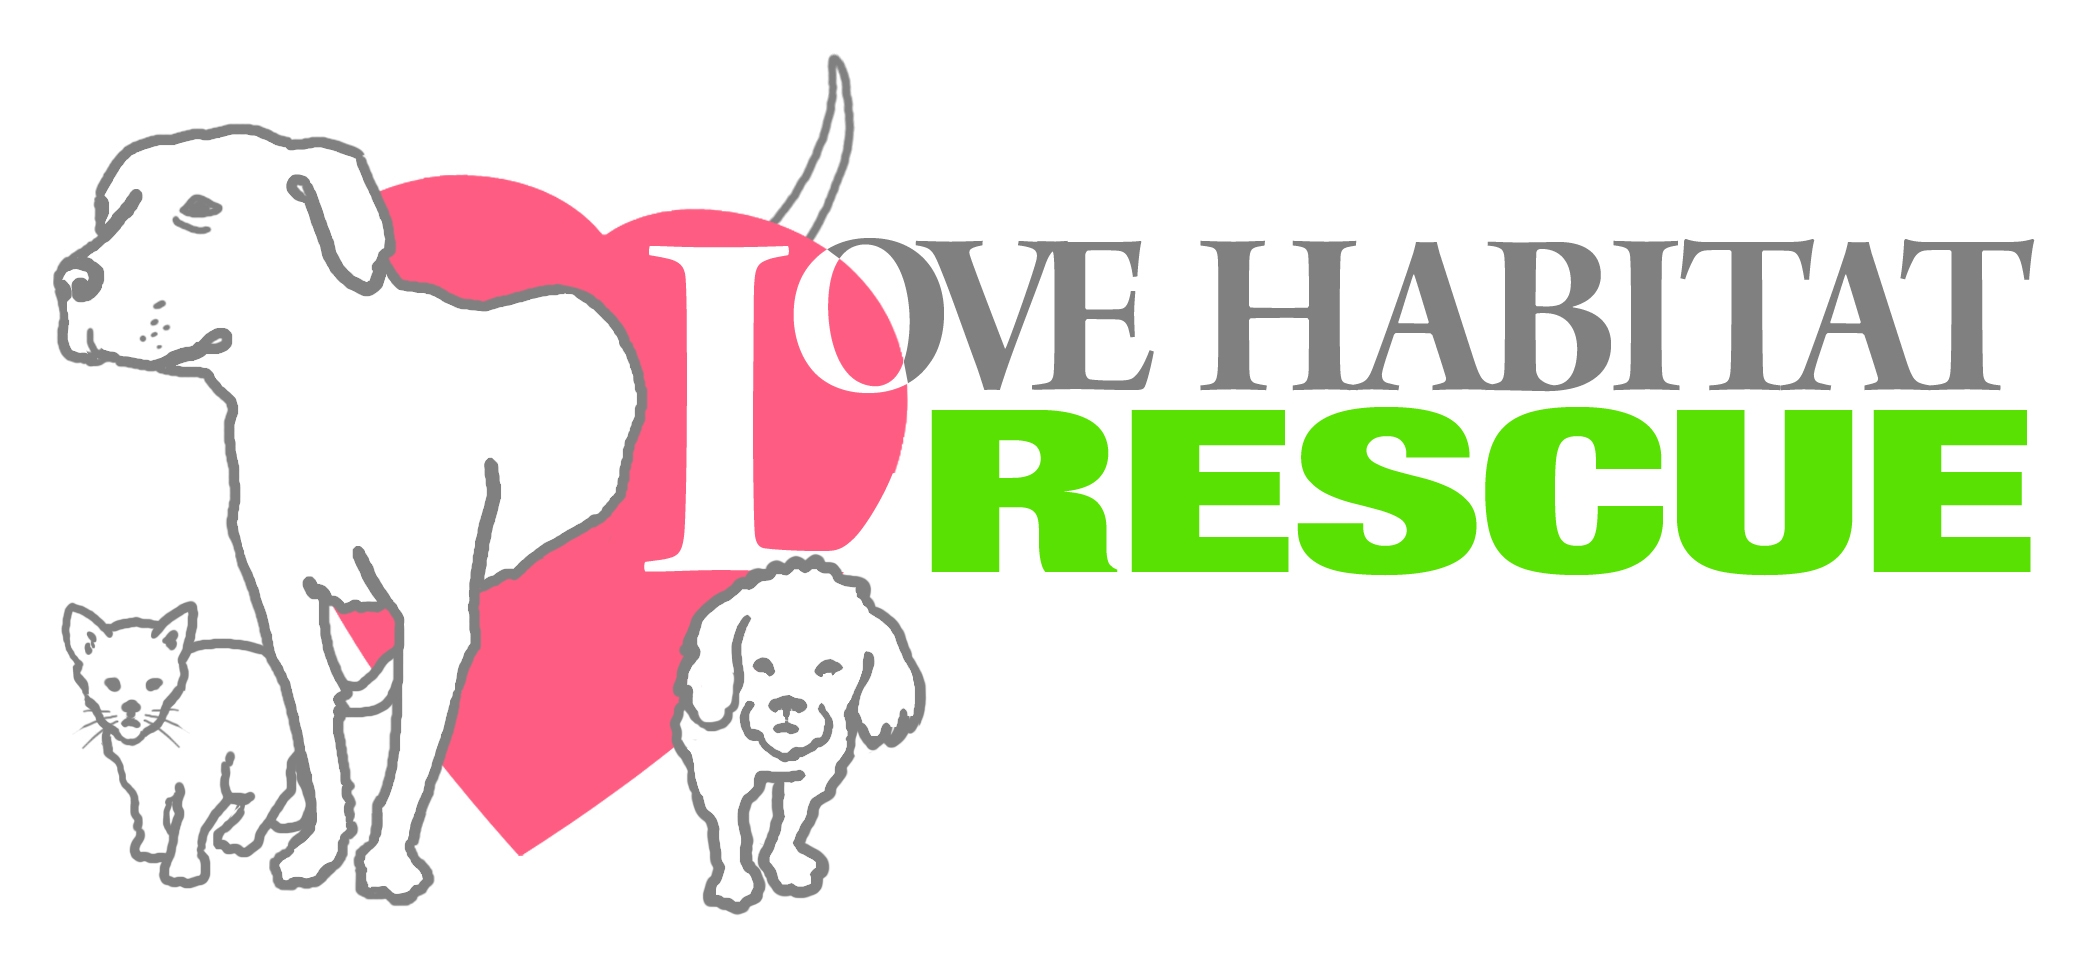 Love Habitat Rescue